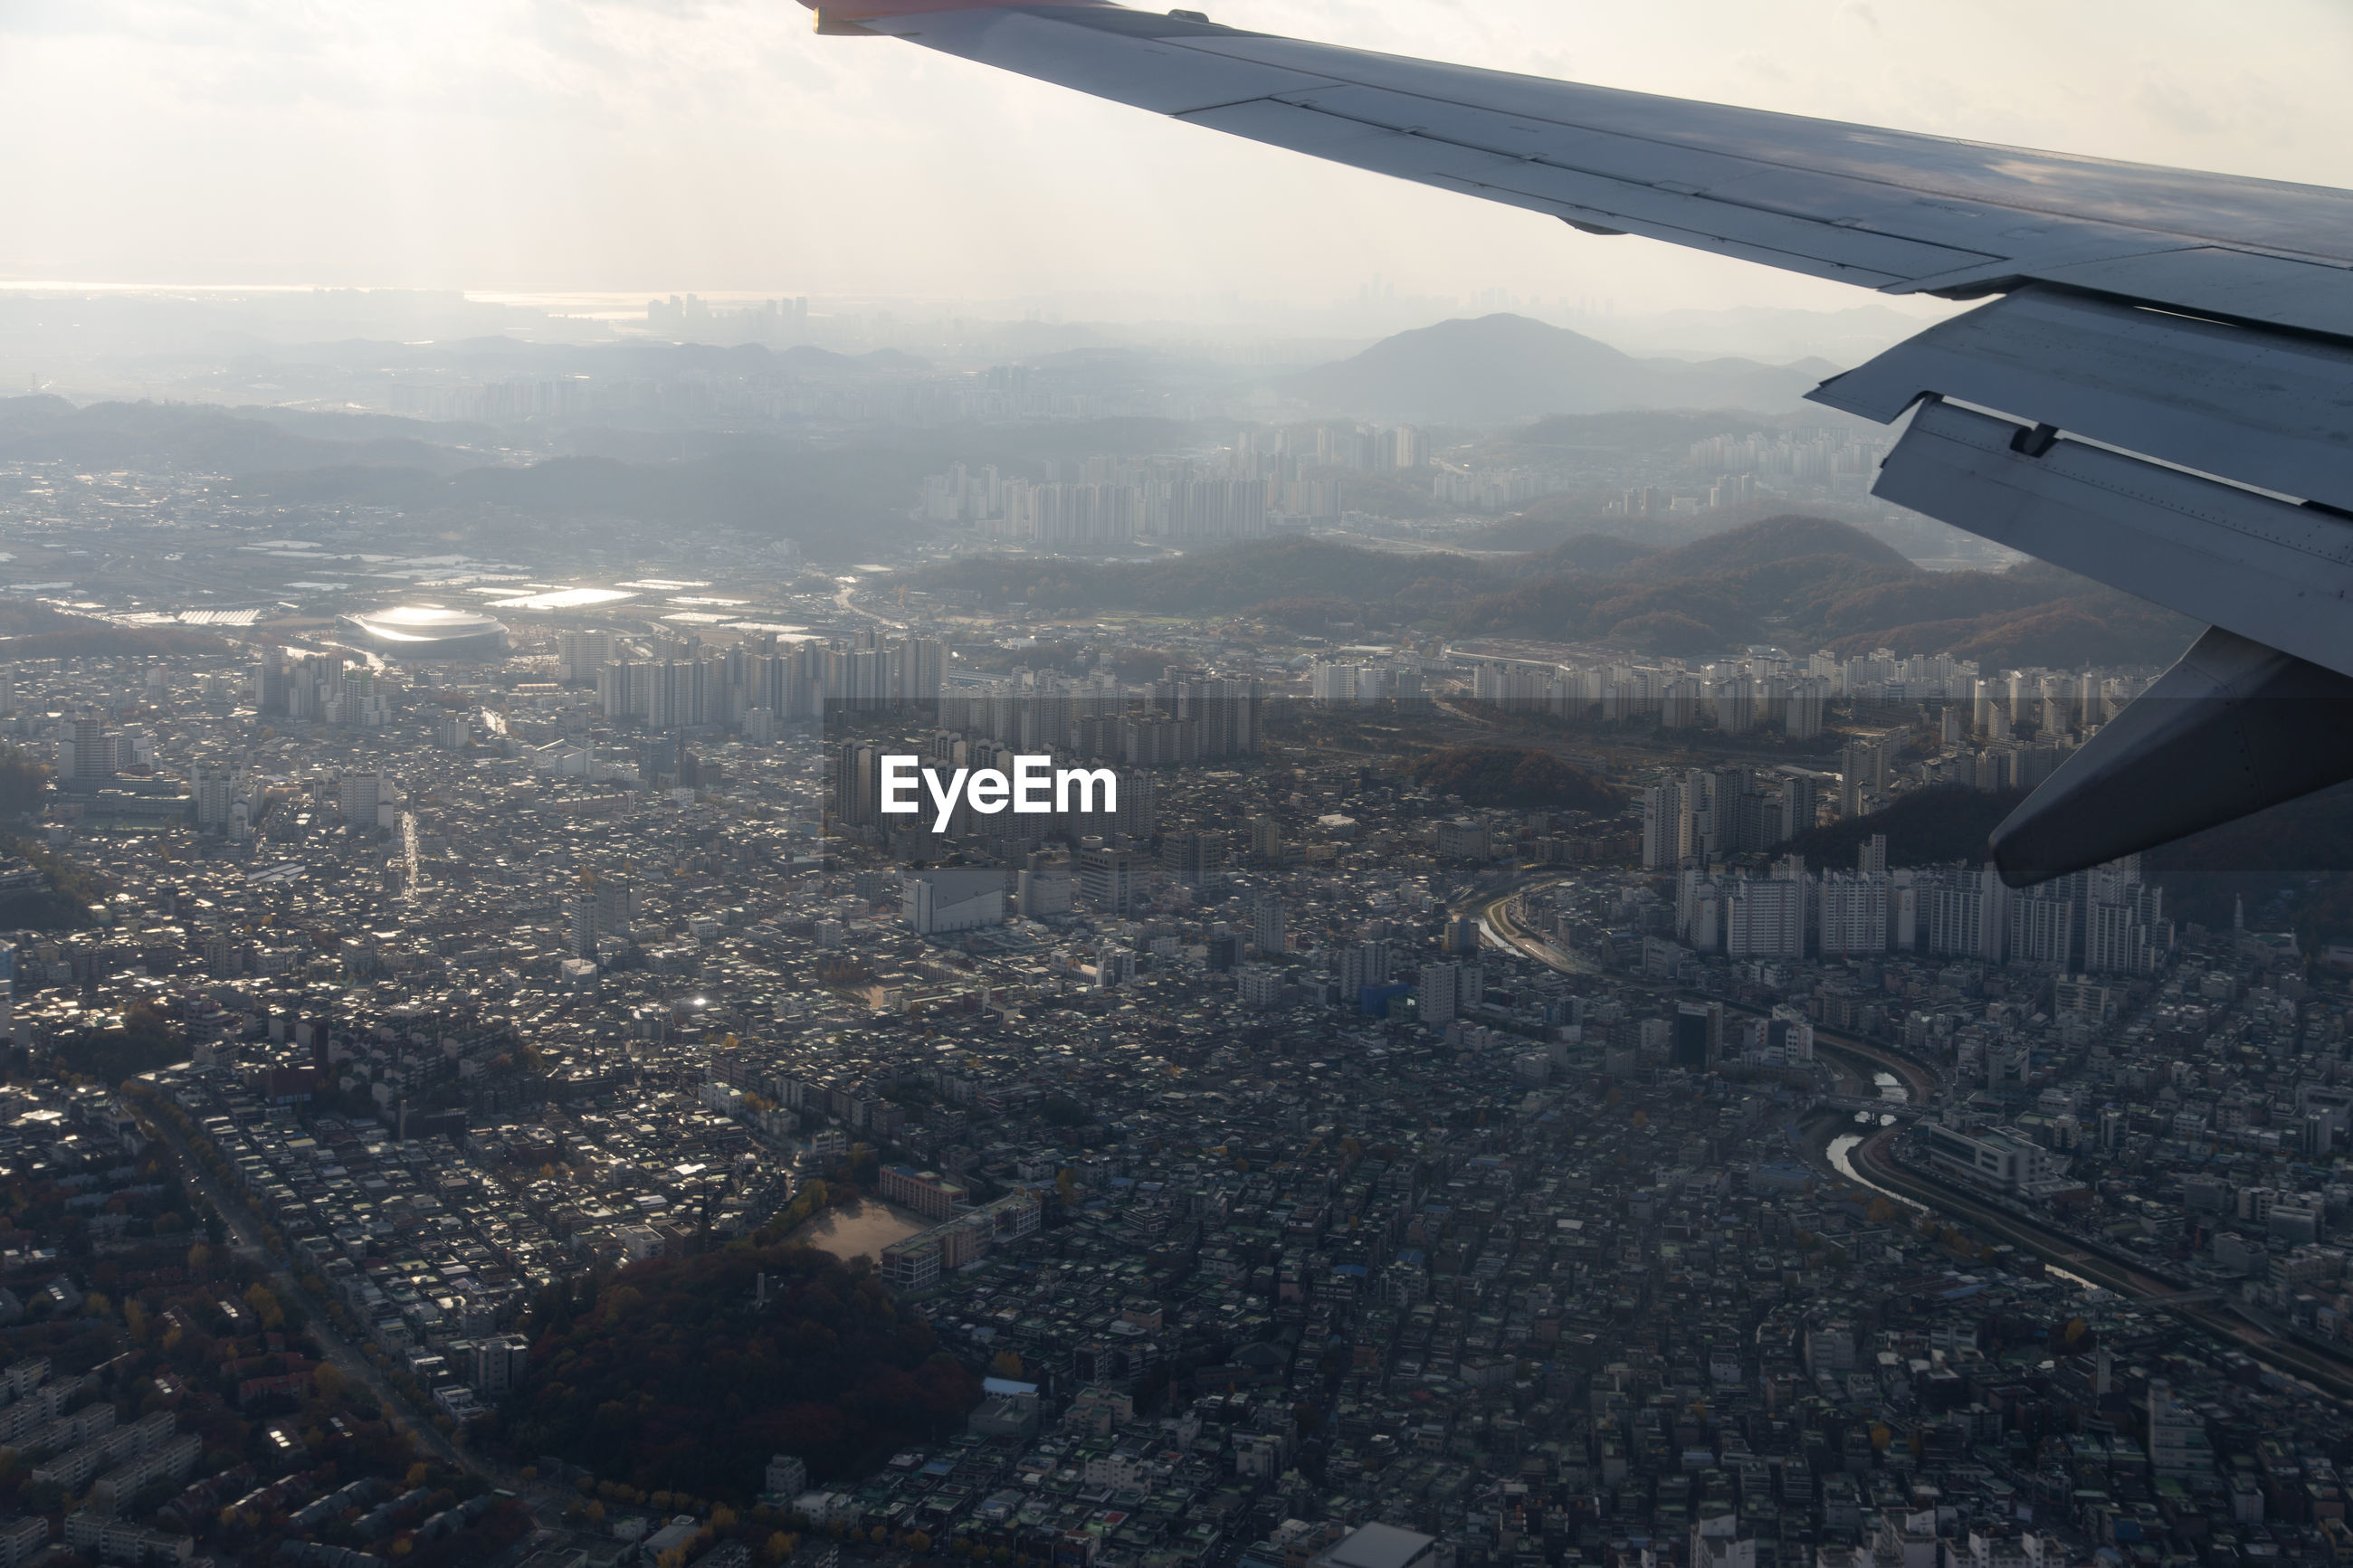 Cropped image of airplane over cityscape